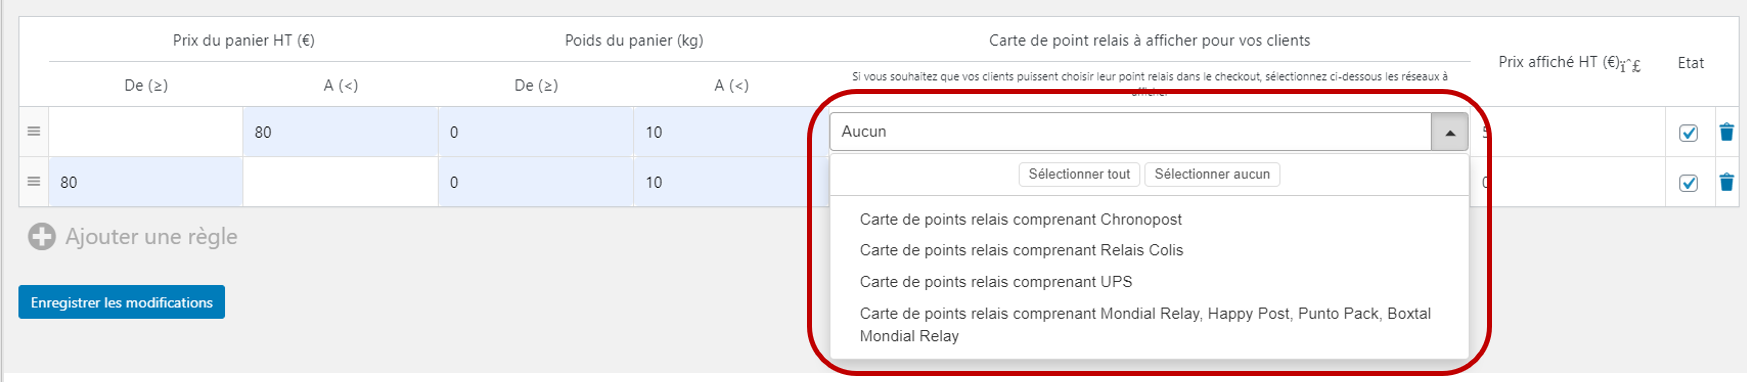 Boxtal_Woocommerce-BO_Param_trage-carte-point-relais.PNG